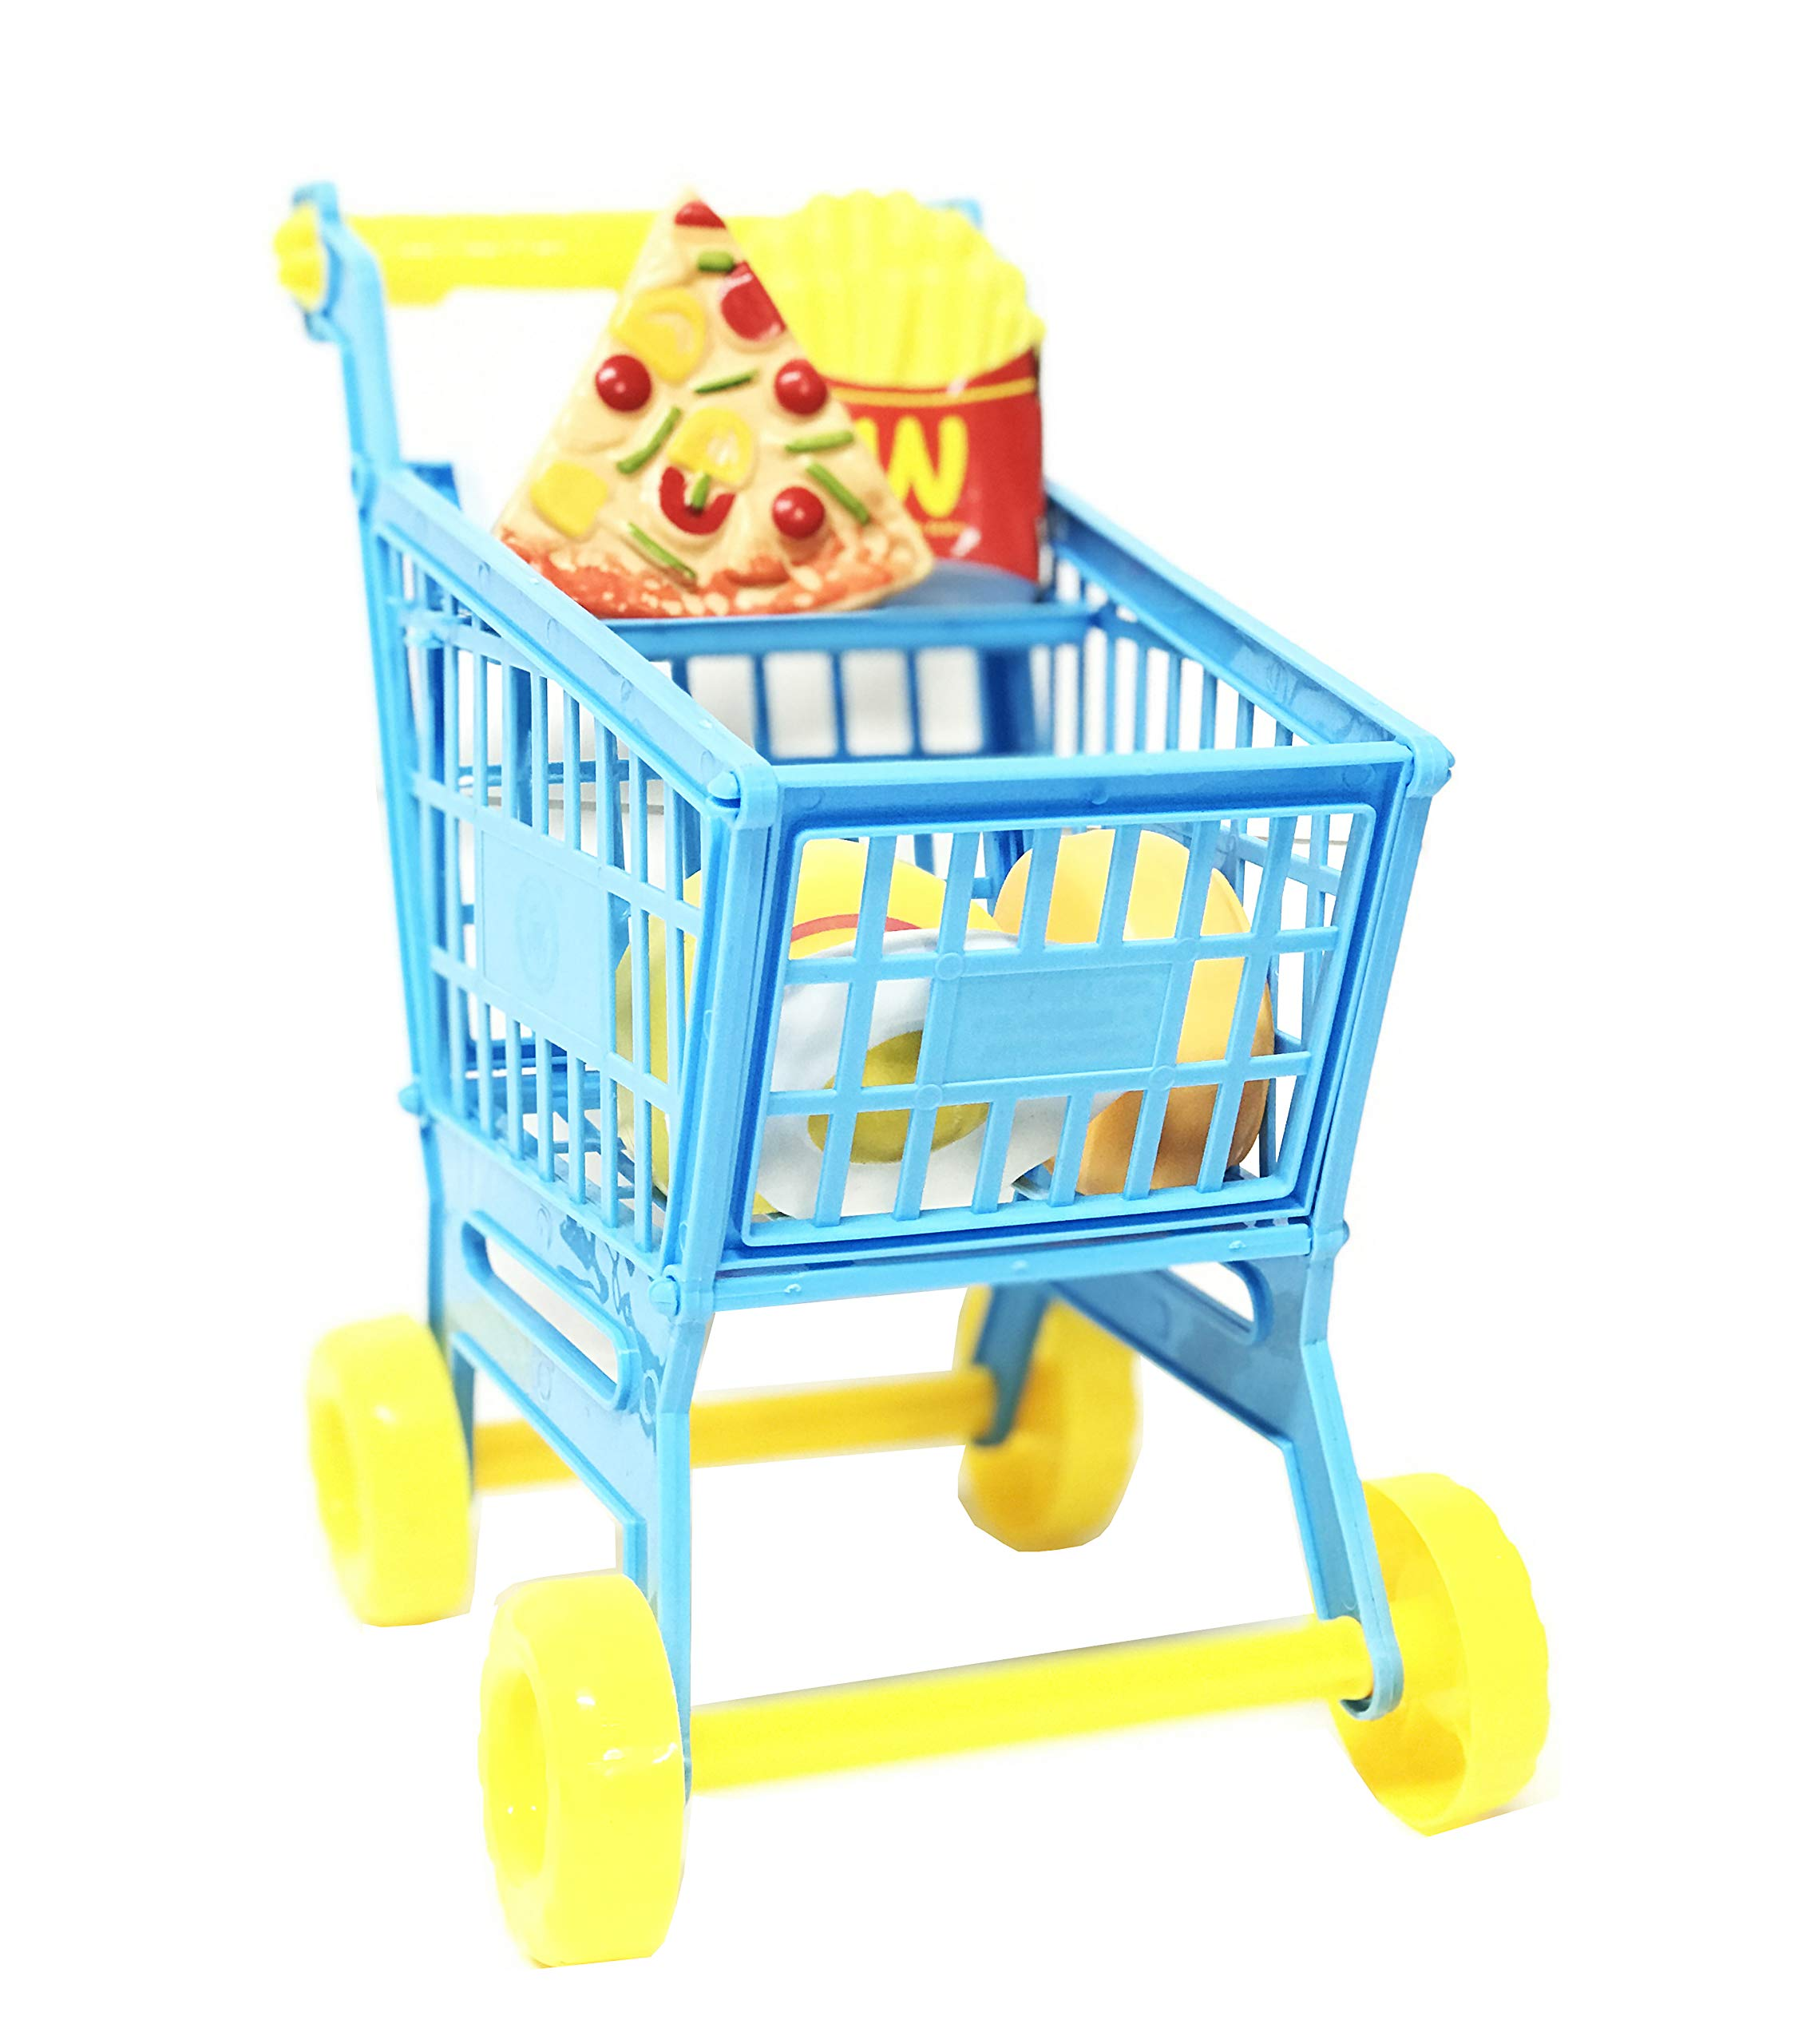 11 inch Fun Toy Shopping Day Grocery Cart Perfect for Kids Children Toddlers Learning Educational Development Pretend Game